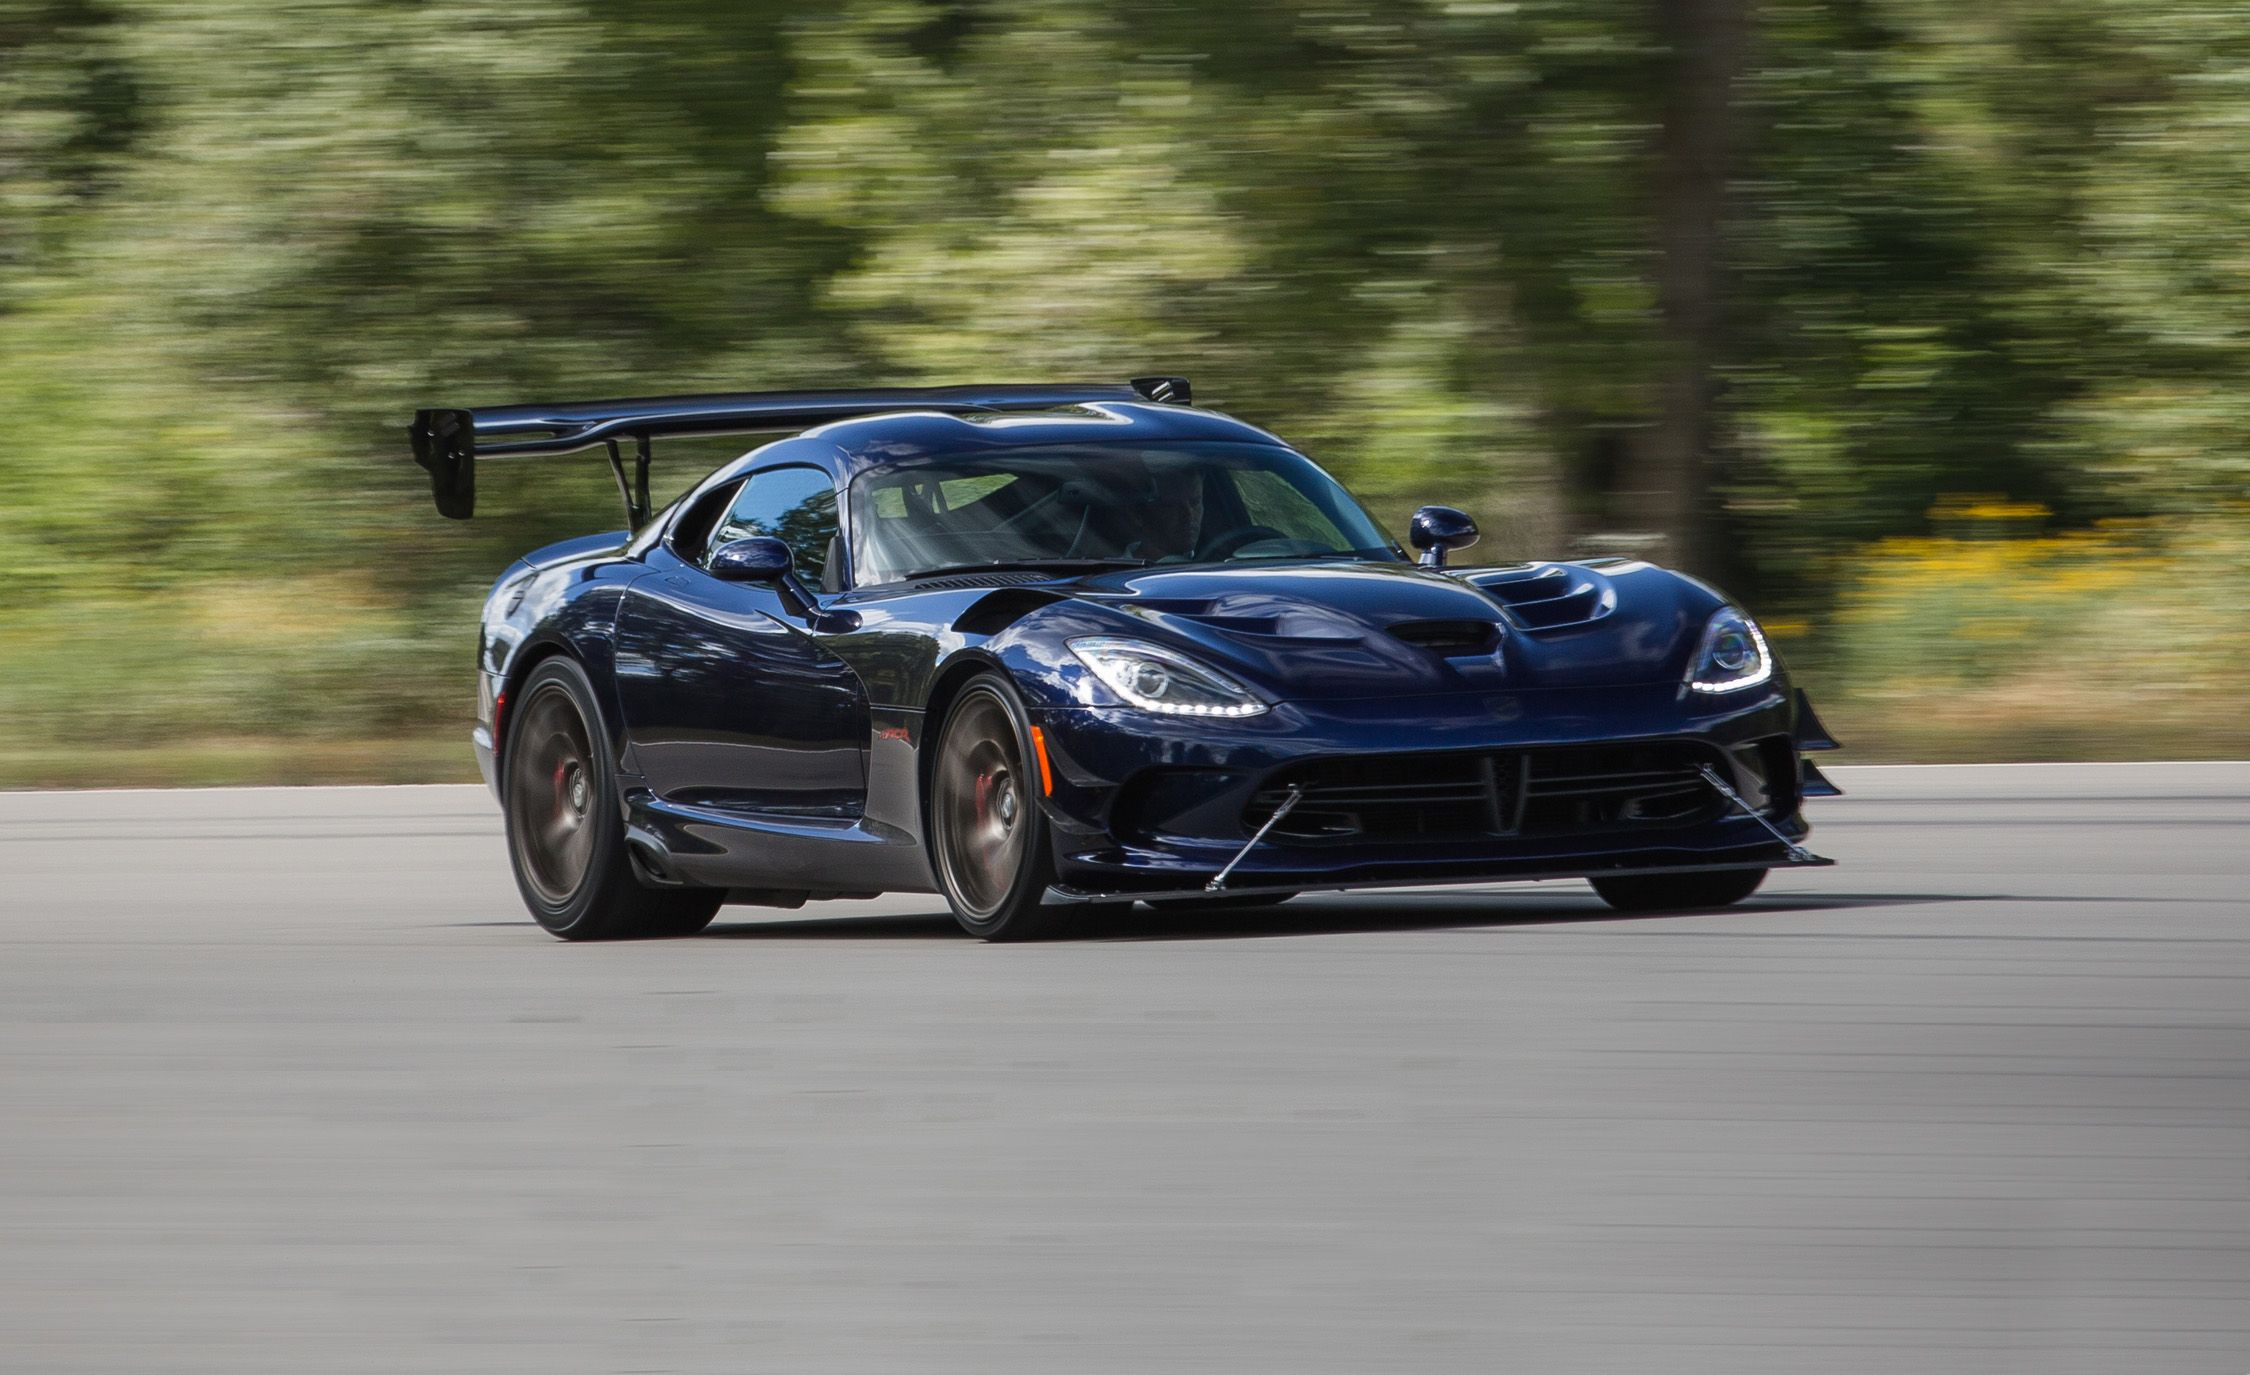 Dodge Viper Reviews | Dodge Viper Price, Photos, and Specs | Car and Driver